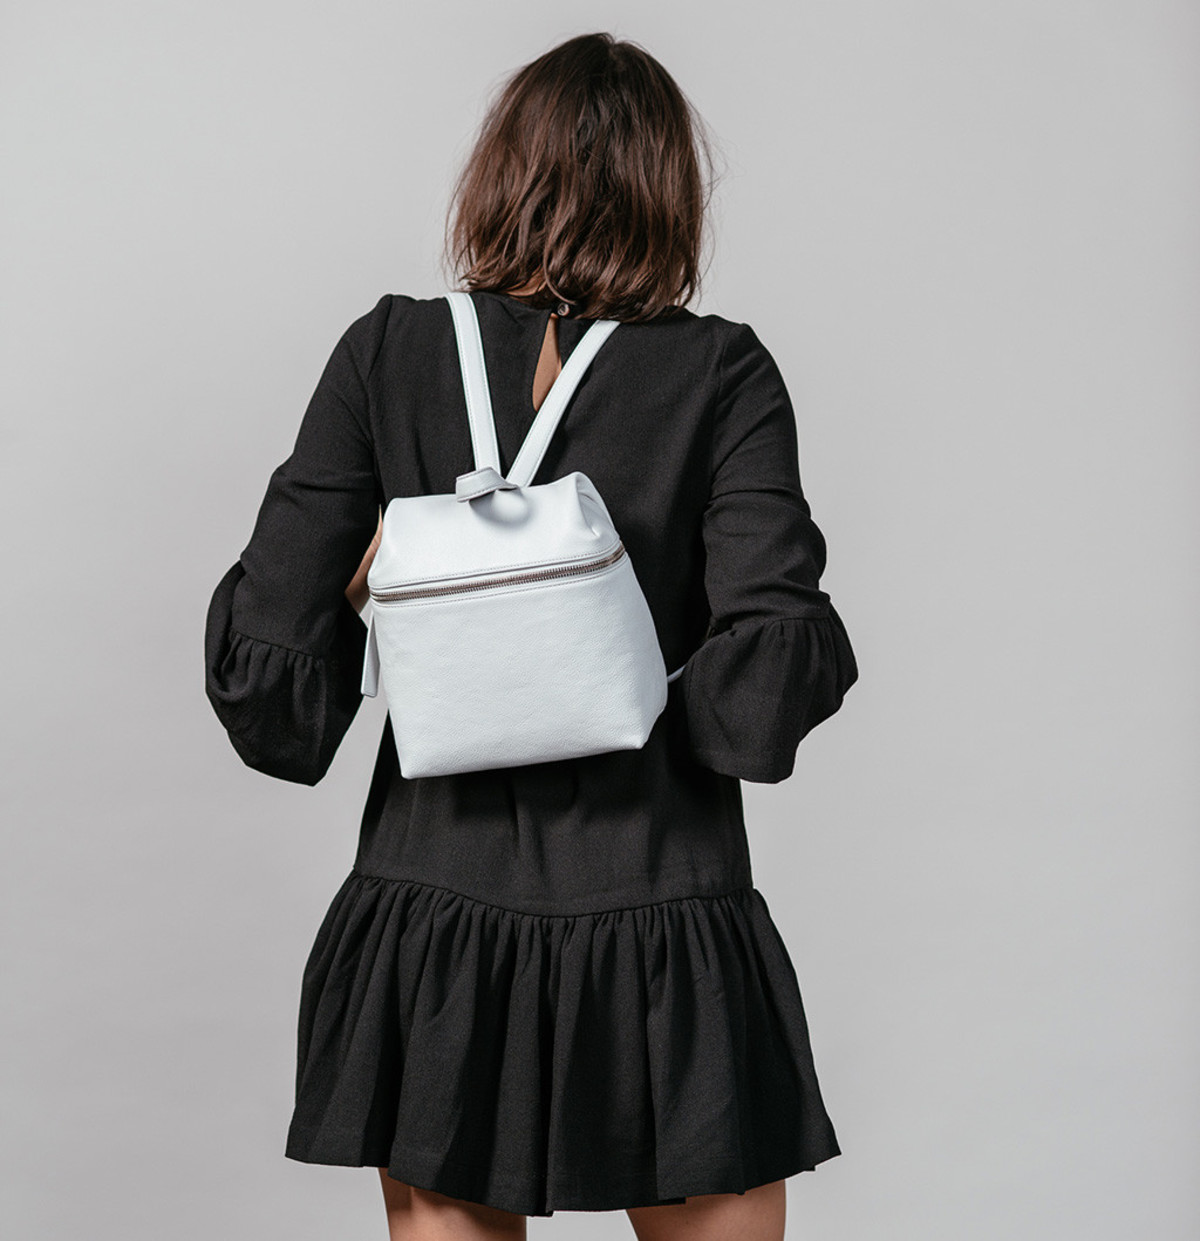 3a6ac1f97a KARA Small Backpack in Pebble Leather